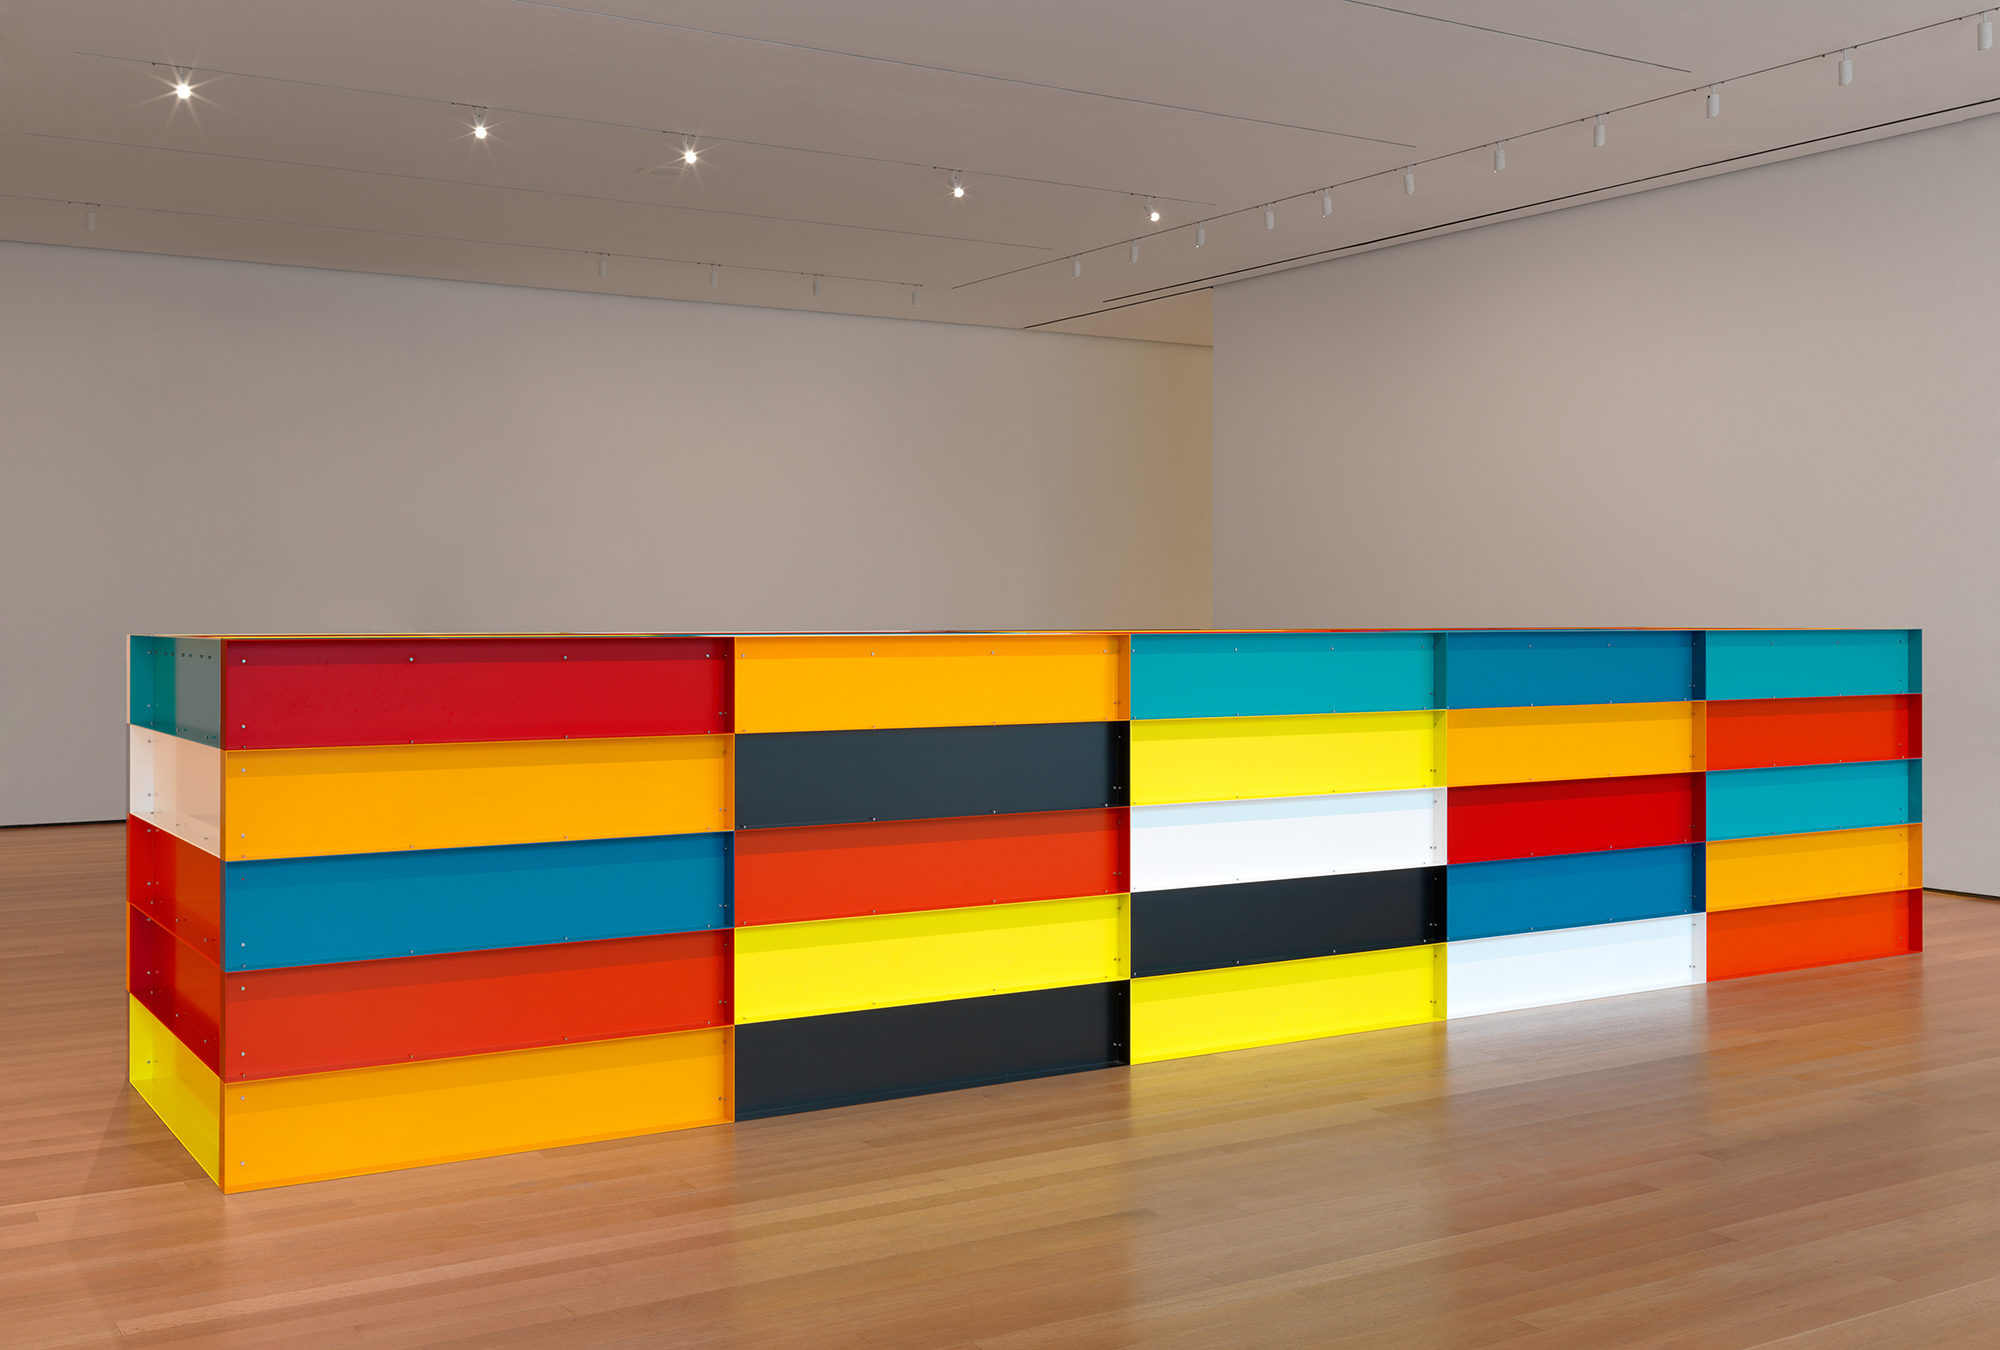 Image for story - Remote Viewing: Donald Judd at MoMA